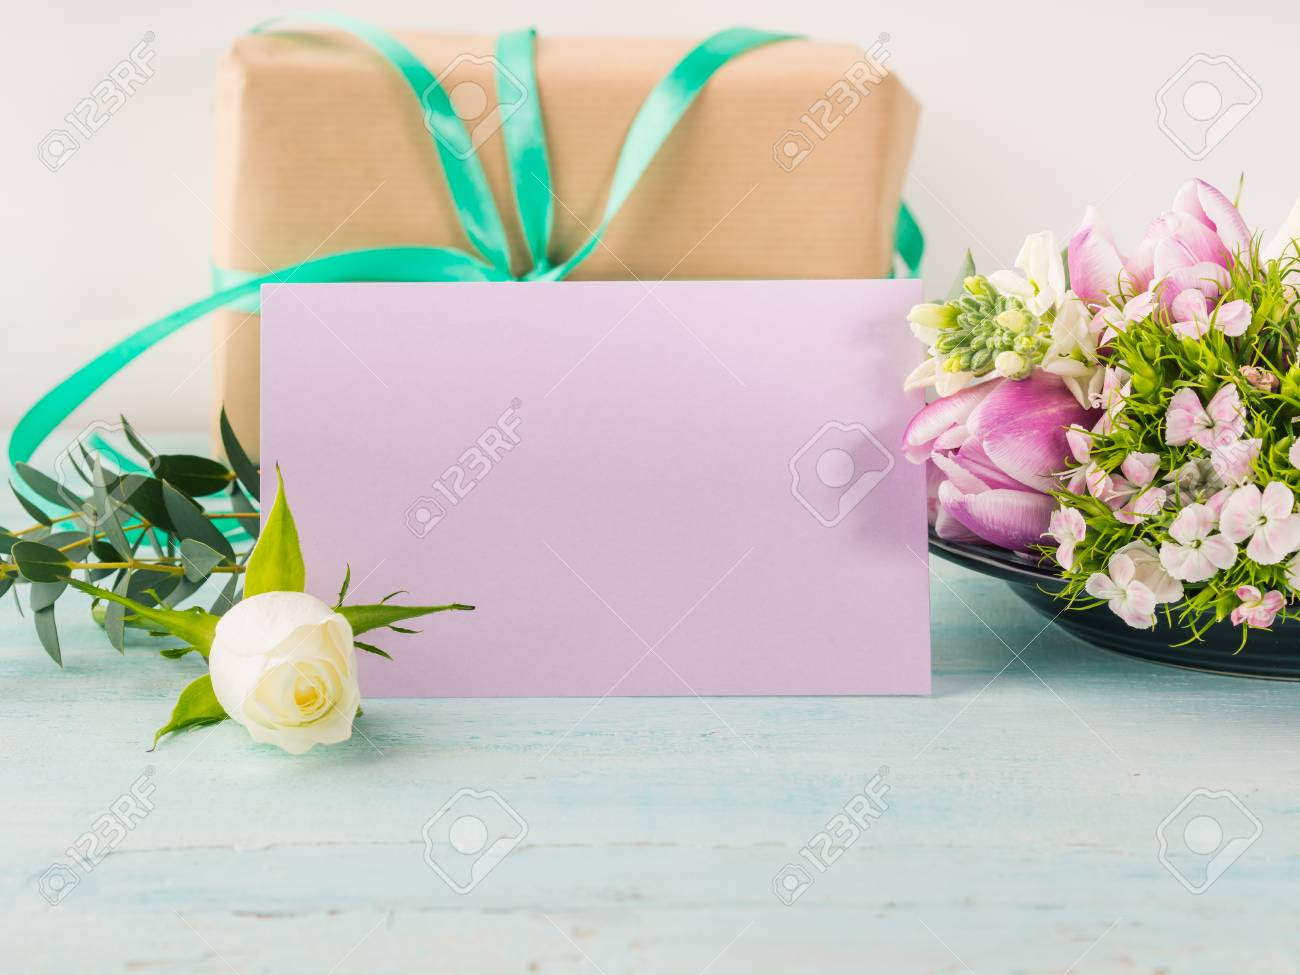 Empty purple card flowers tulips roses spring pastel color background. Easter holiday, wedding birthday invitation - 81457452